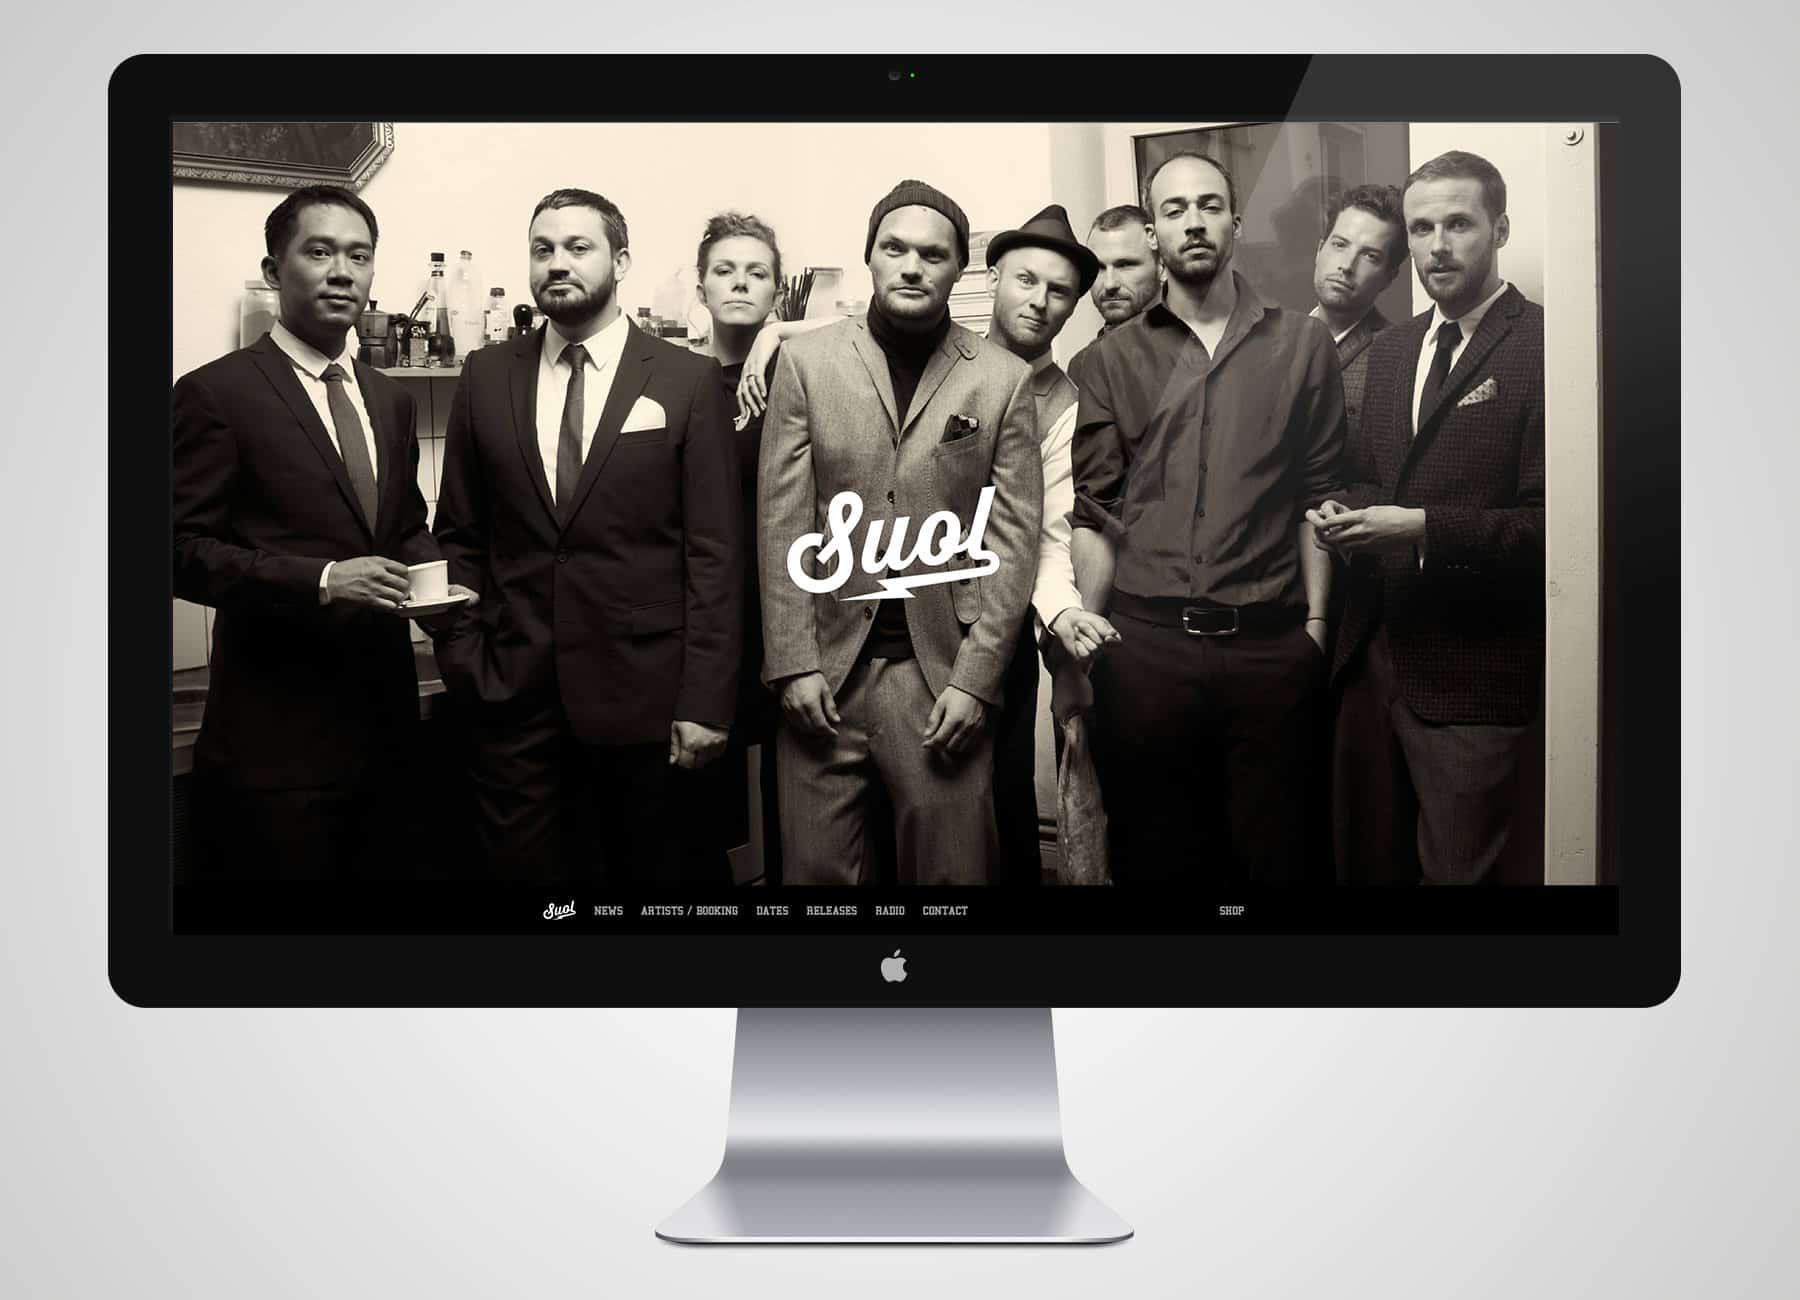 Redesign der Suol Website